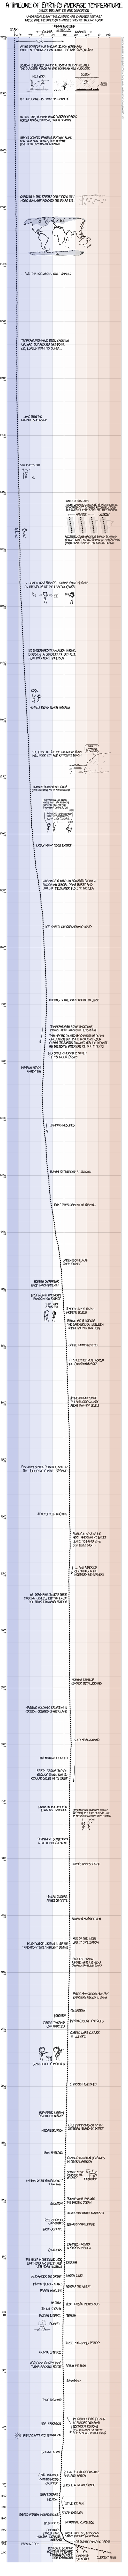 Earth's Temperature Timeline